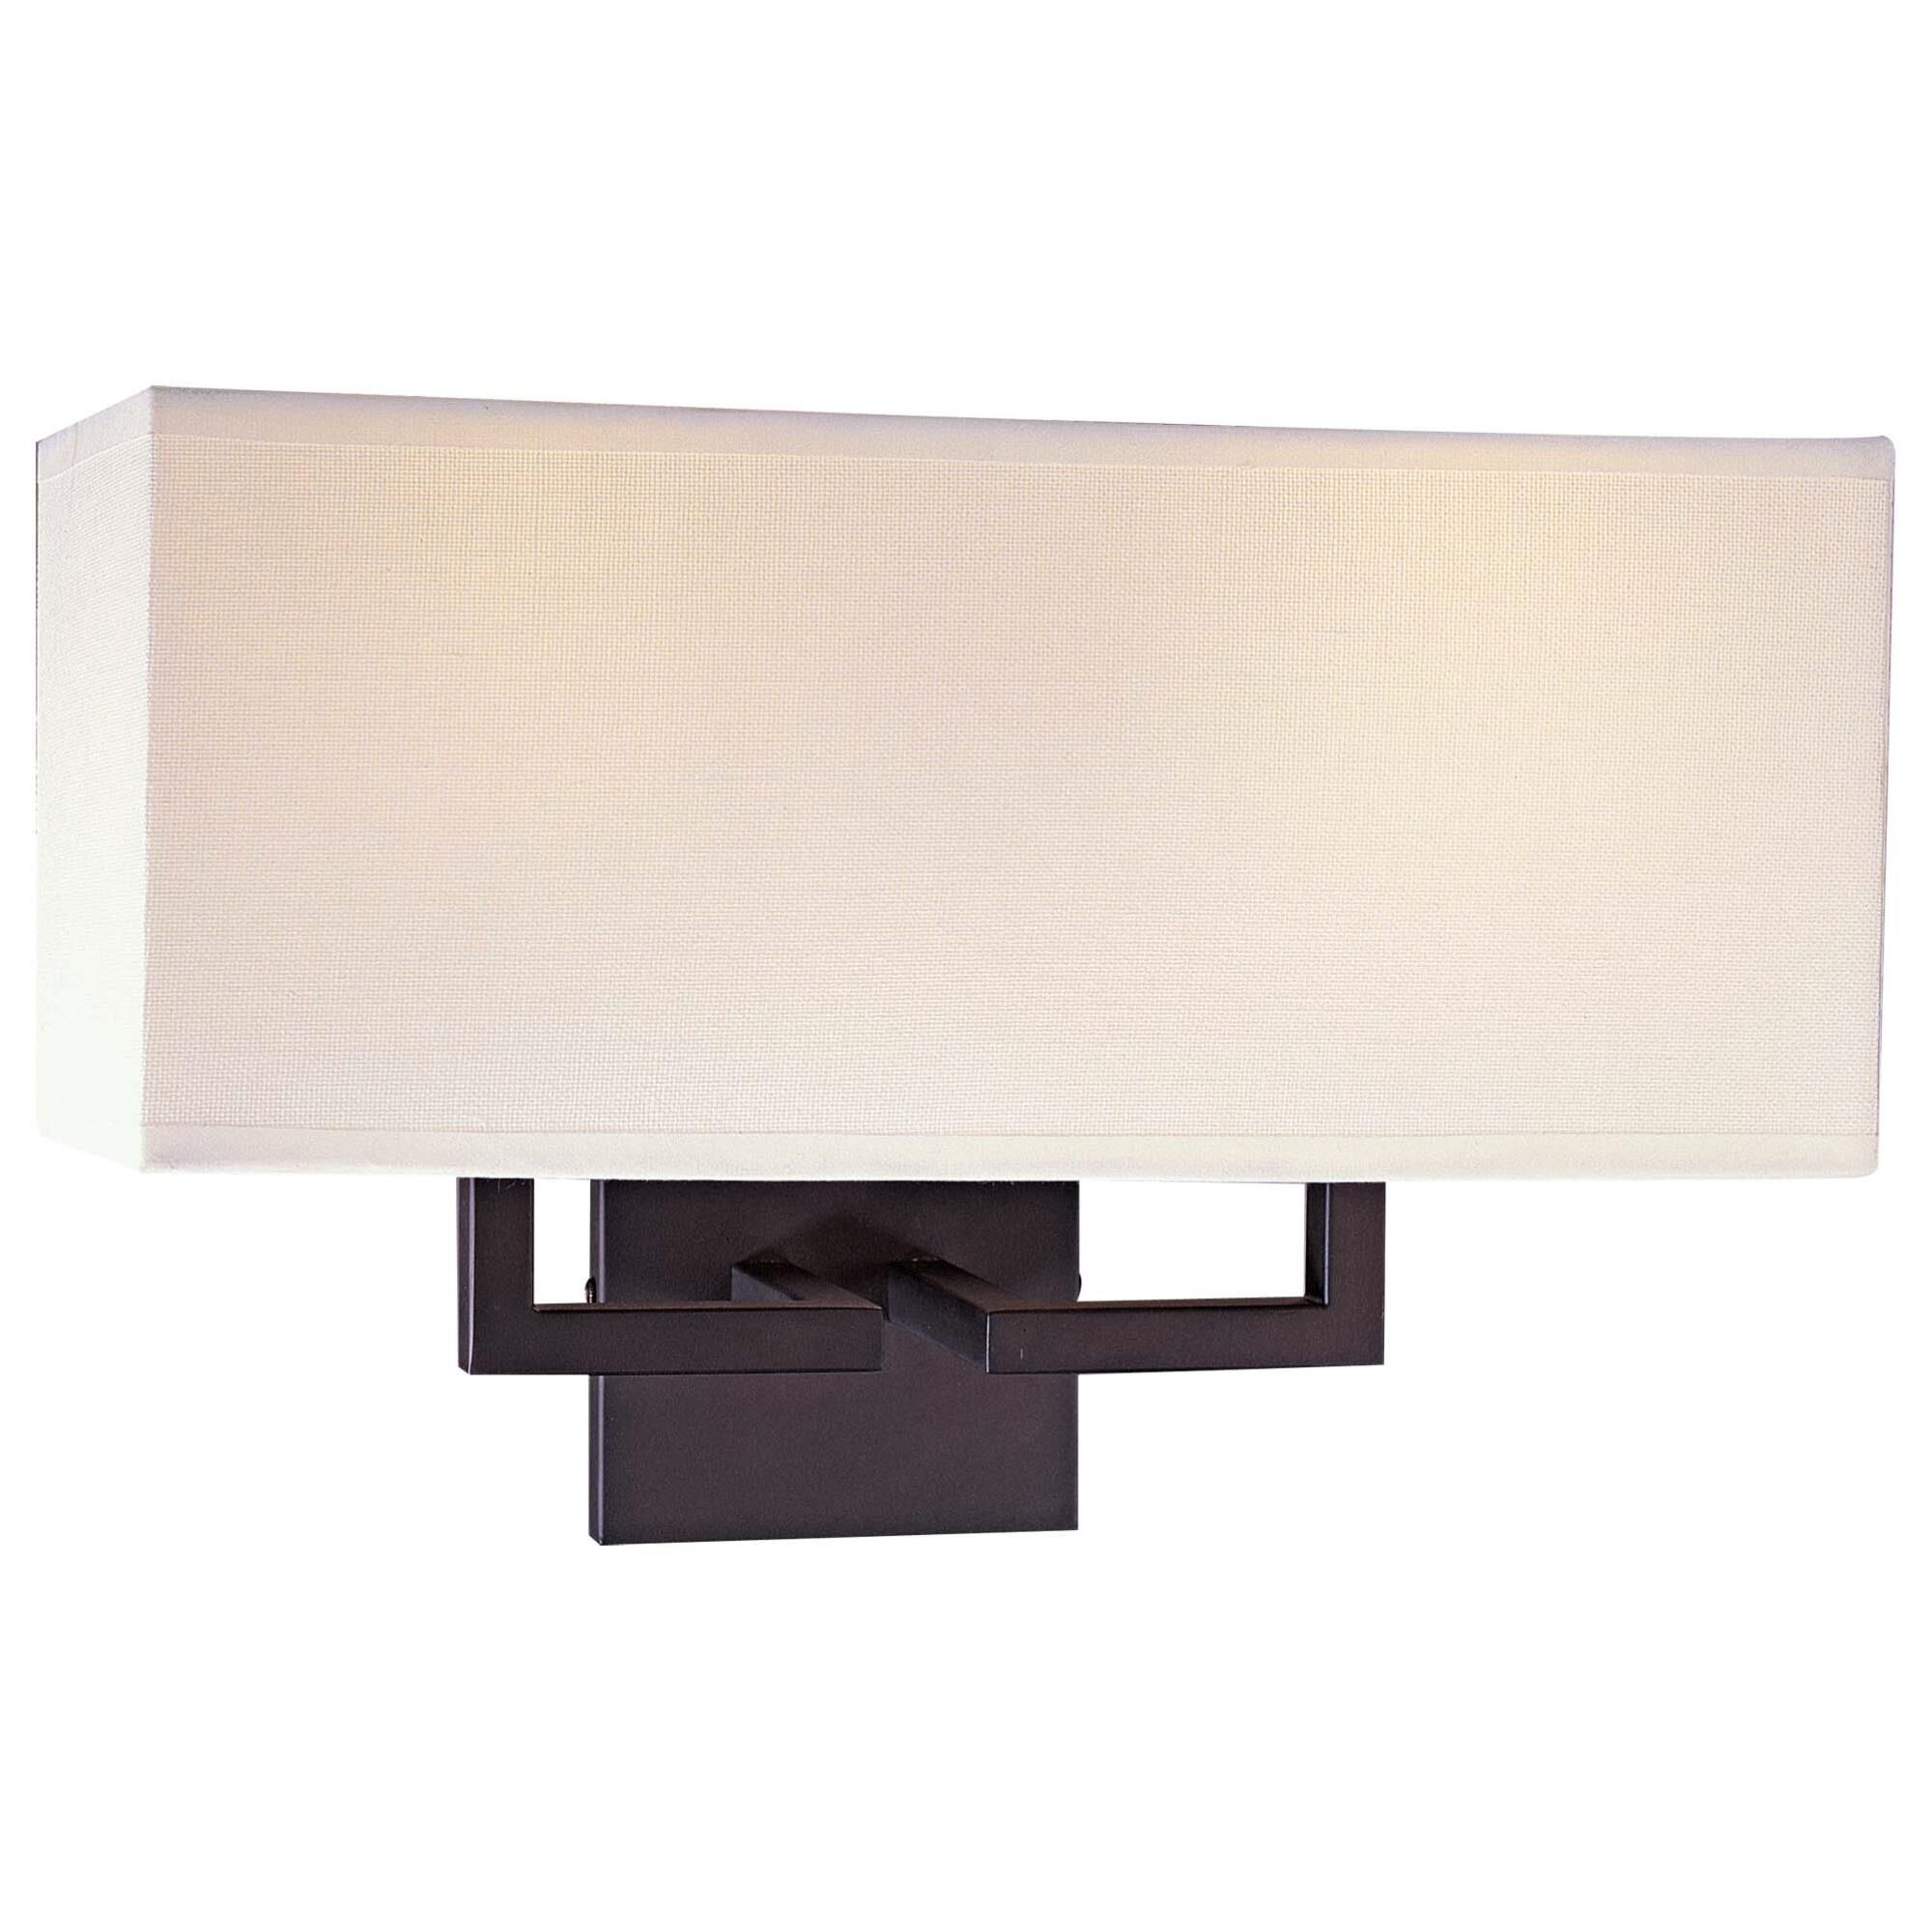 Kovacs 16 Inch Wall Sconce - P472-617 - Transitional